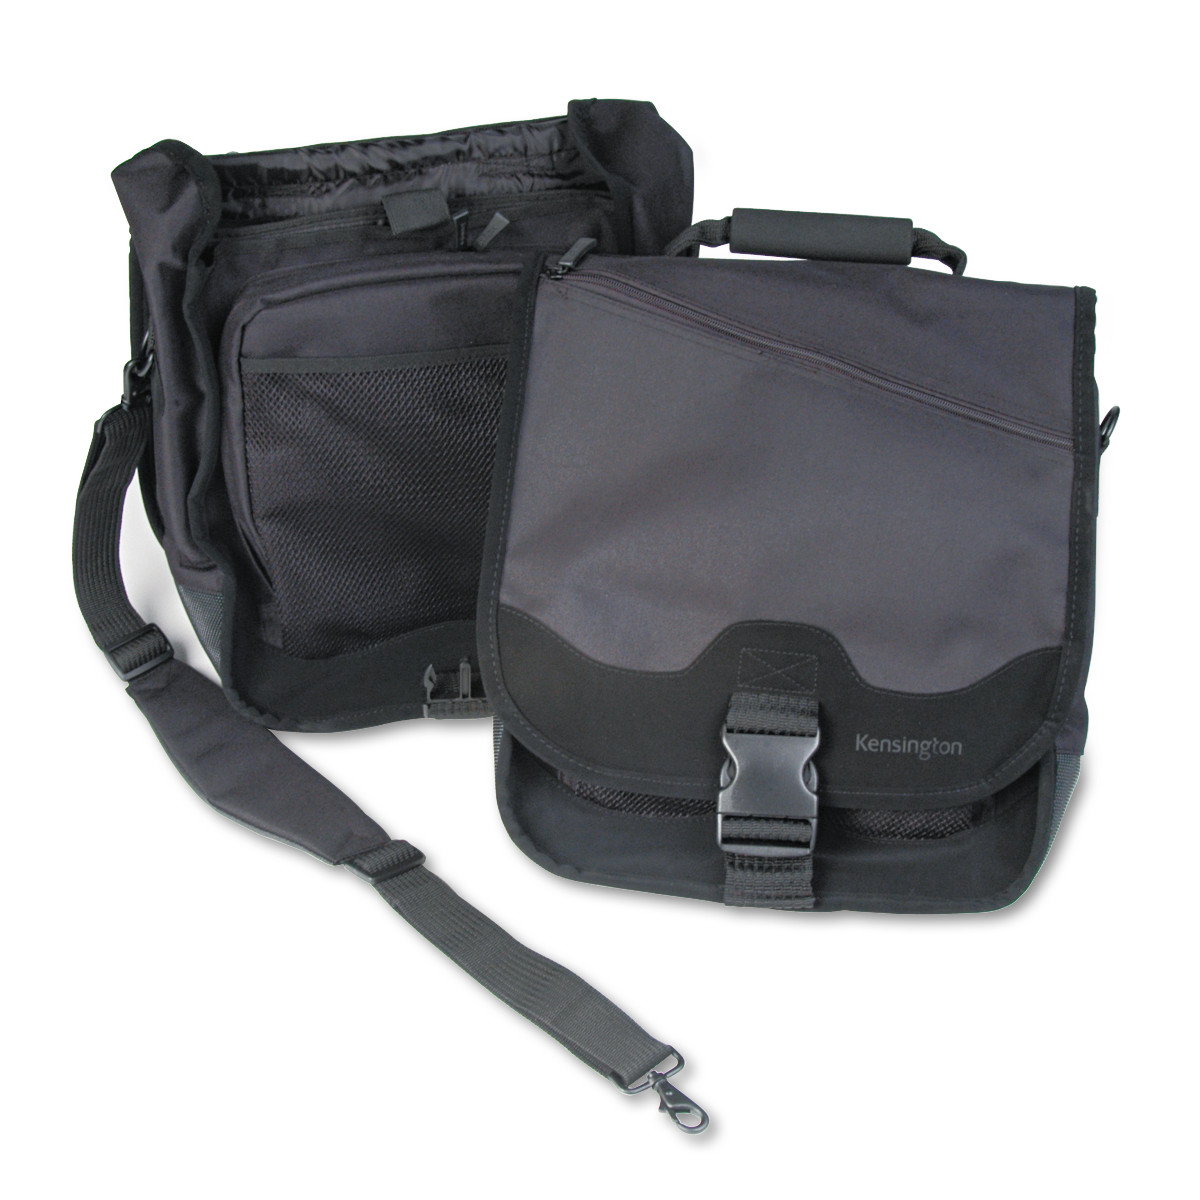 Kensington SaddleBag Laptop Carrying Case, 14-1/4 x 6-1/2 x 16-1/2, Black